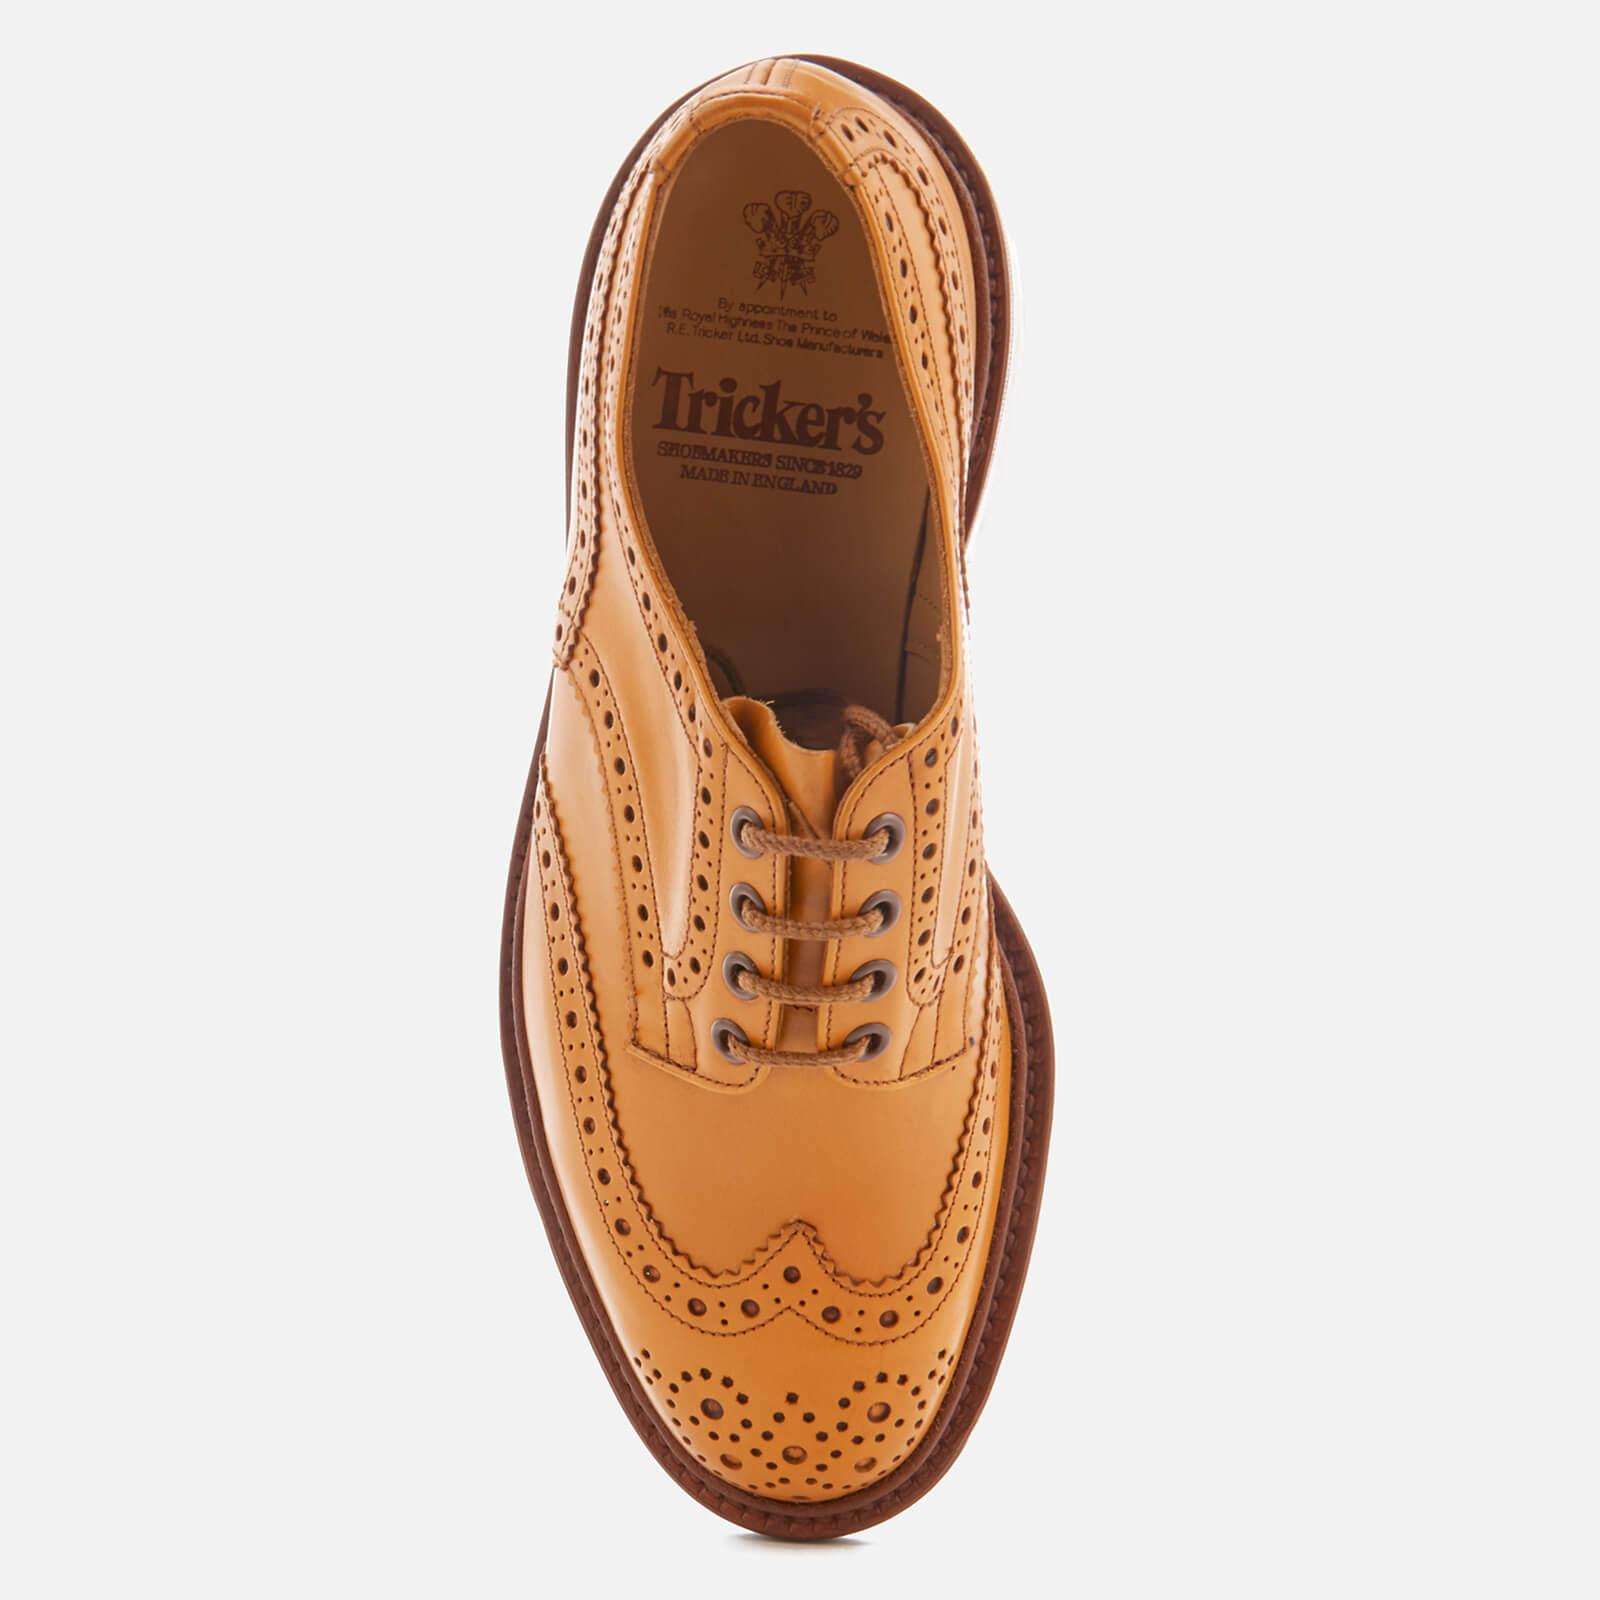 Tricker's Bourton Leather Brogues in Tan (Brown) for Men